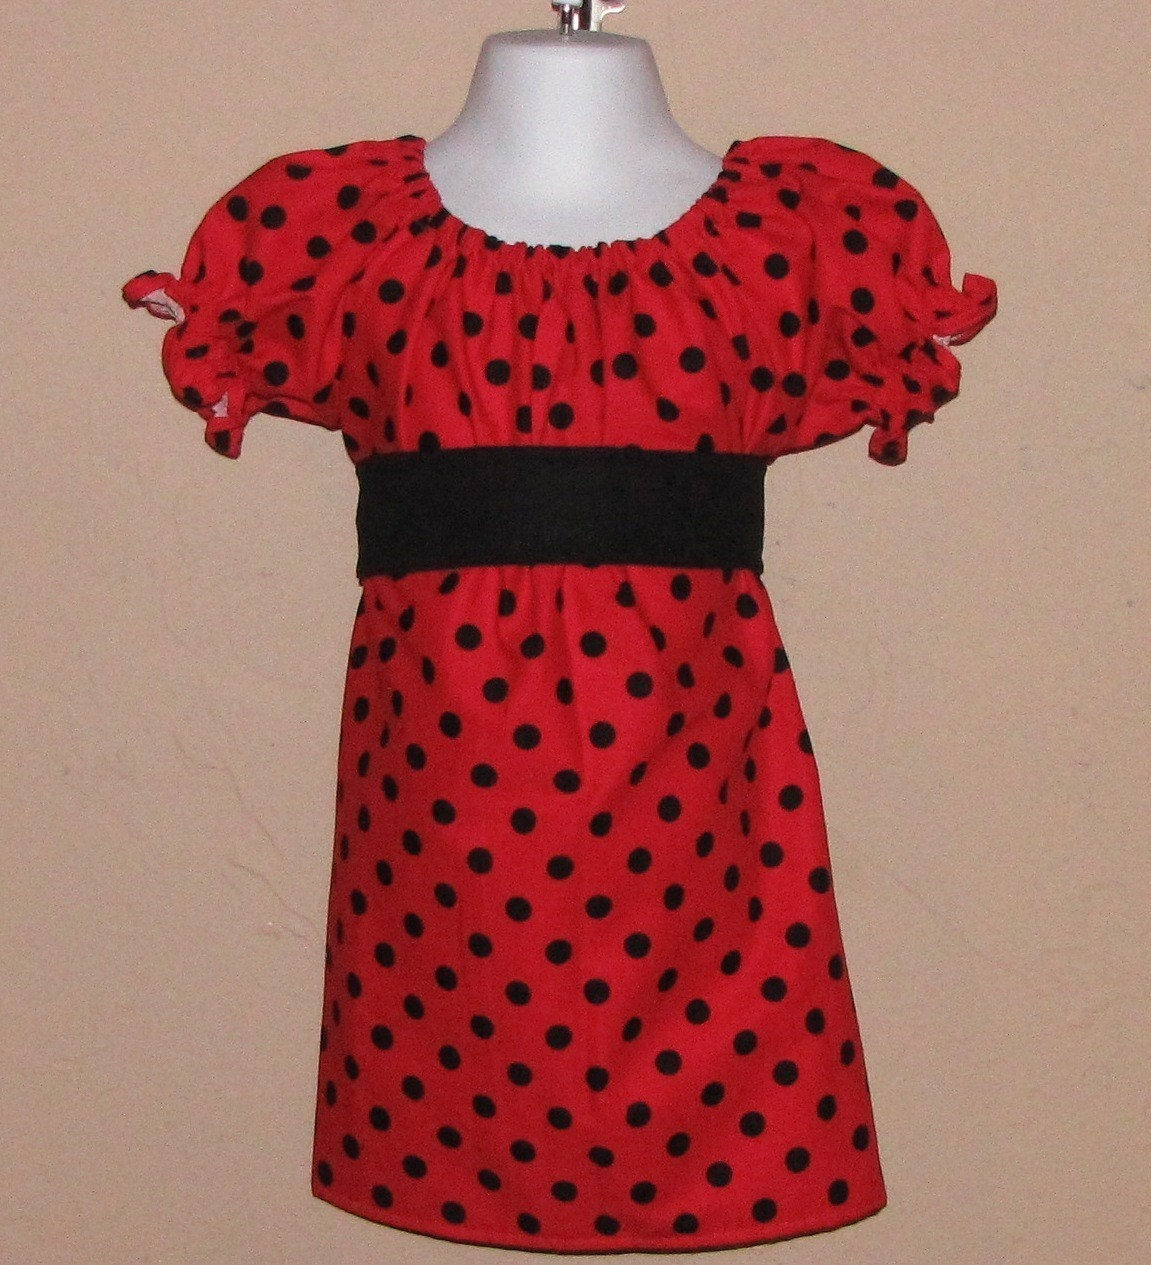 Lady Bug Peasant Dress with Sash 3 6 12 18 month mo 2T 3T 4T 5T 6 7 ..... By Girlie Bows